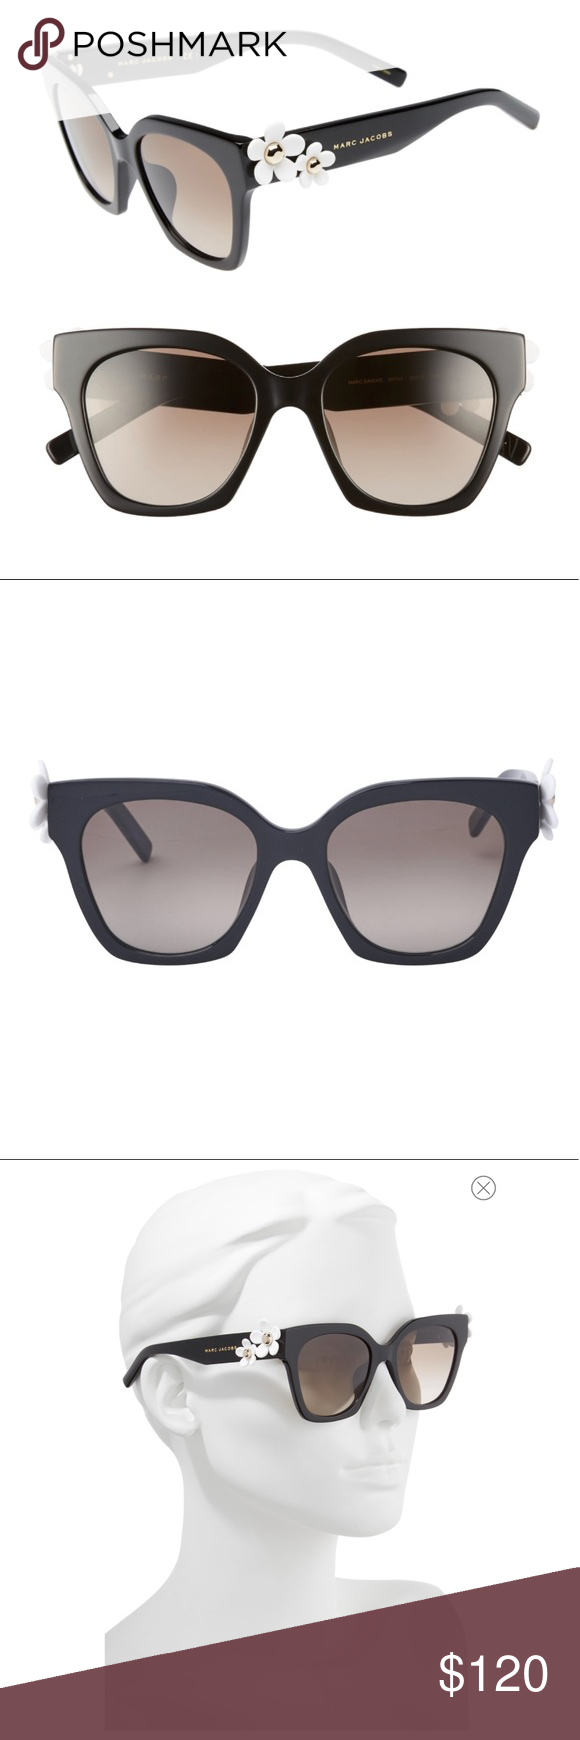 5c3ce306bf380 Marc Jacobs Daisy Sunglasses New. Never worn. Perfect condition. Were on  display at